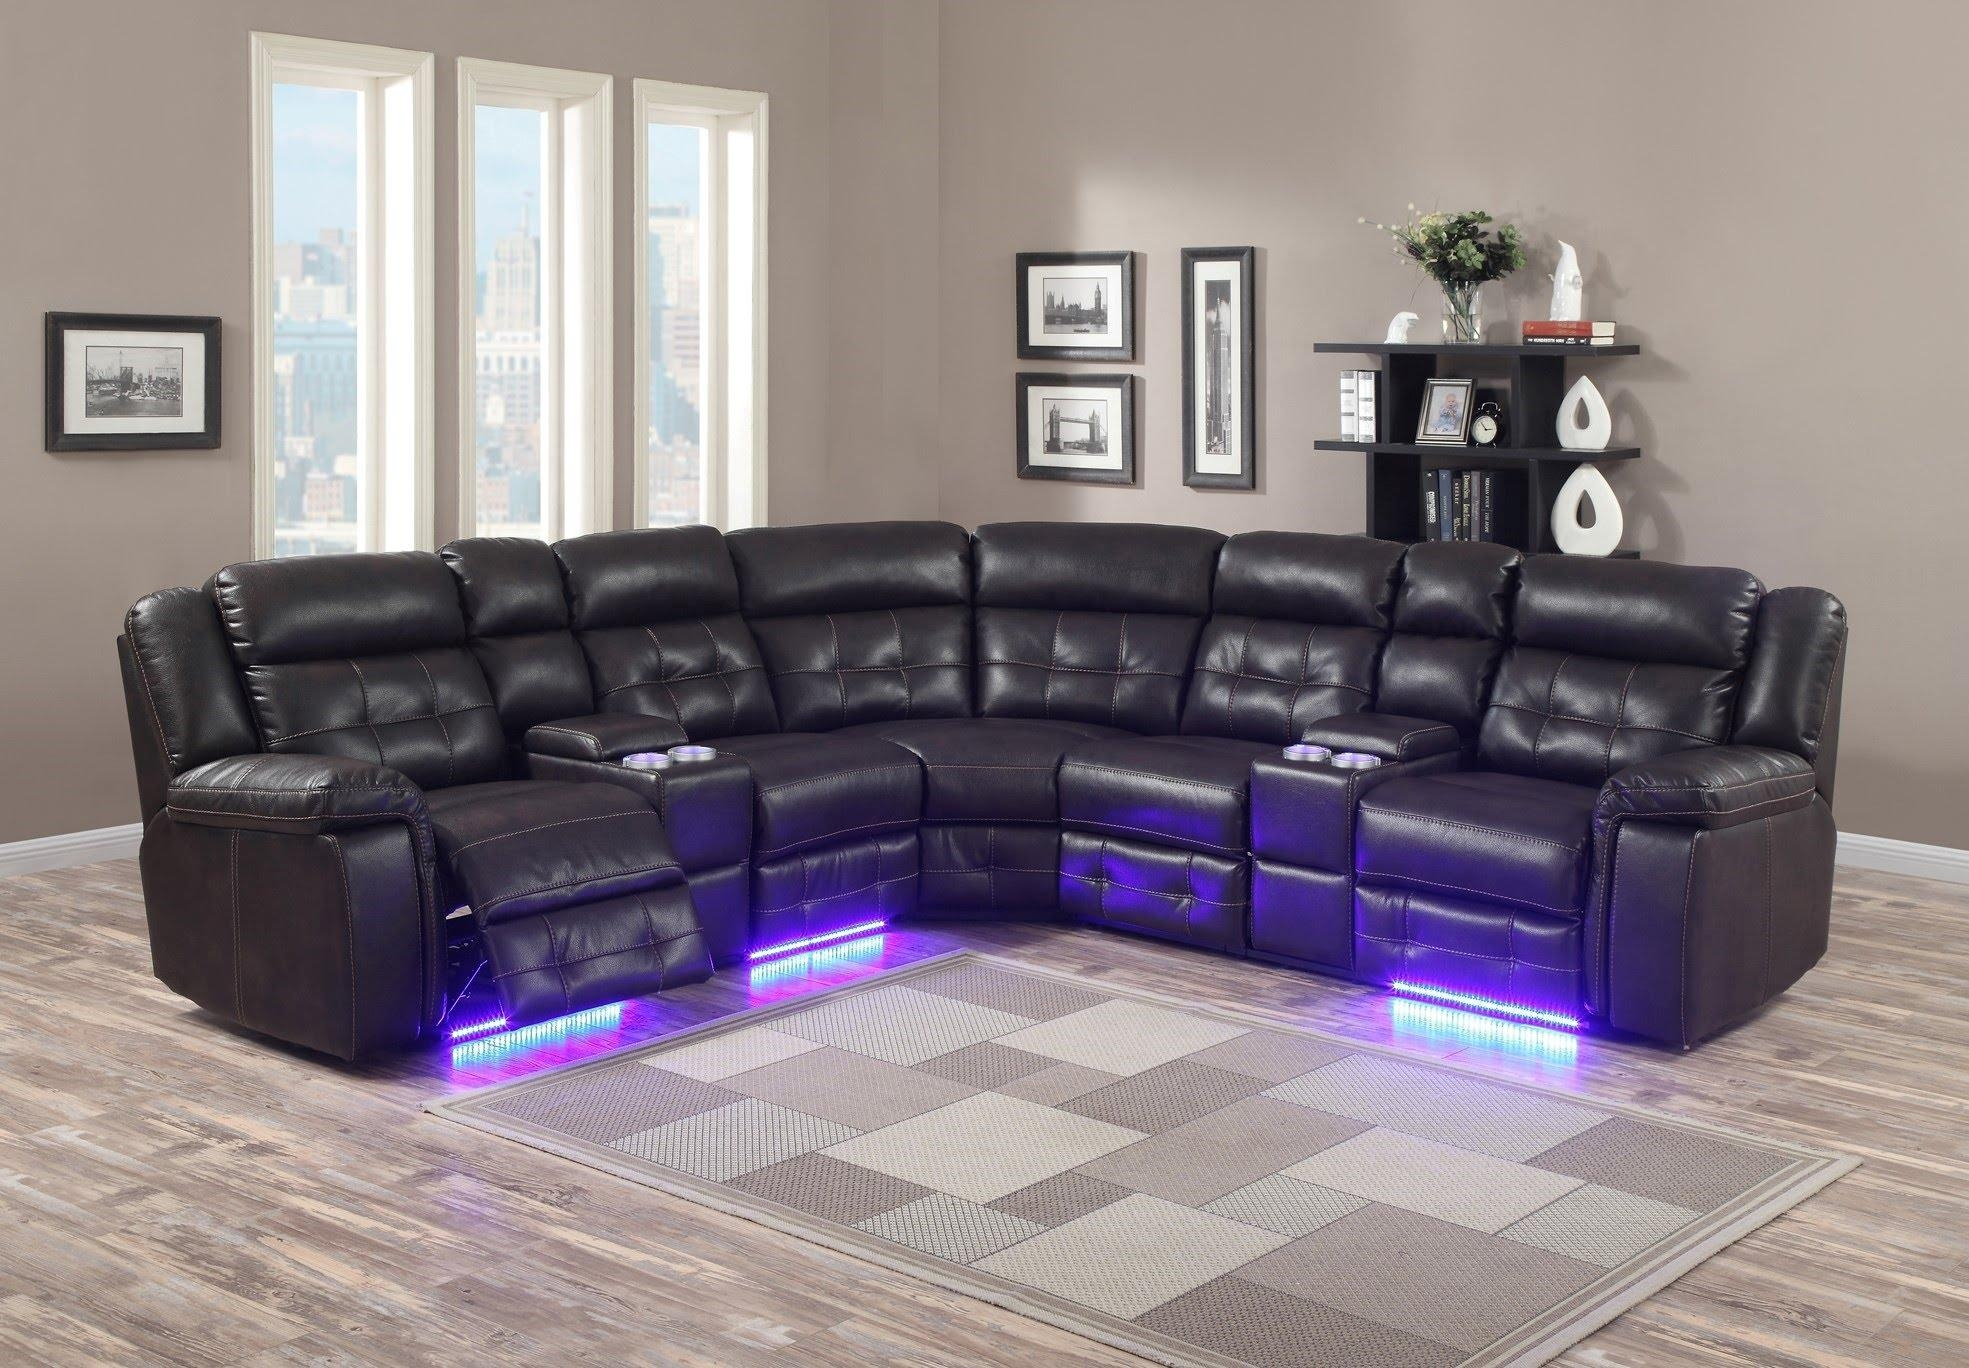 Living Room: Exciting Sofa Set For Sale Cheap Couch, Sofa Set Within Sofas With Lights (Image 13 of 21)